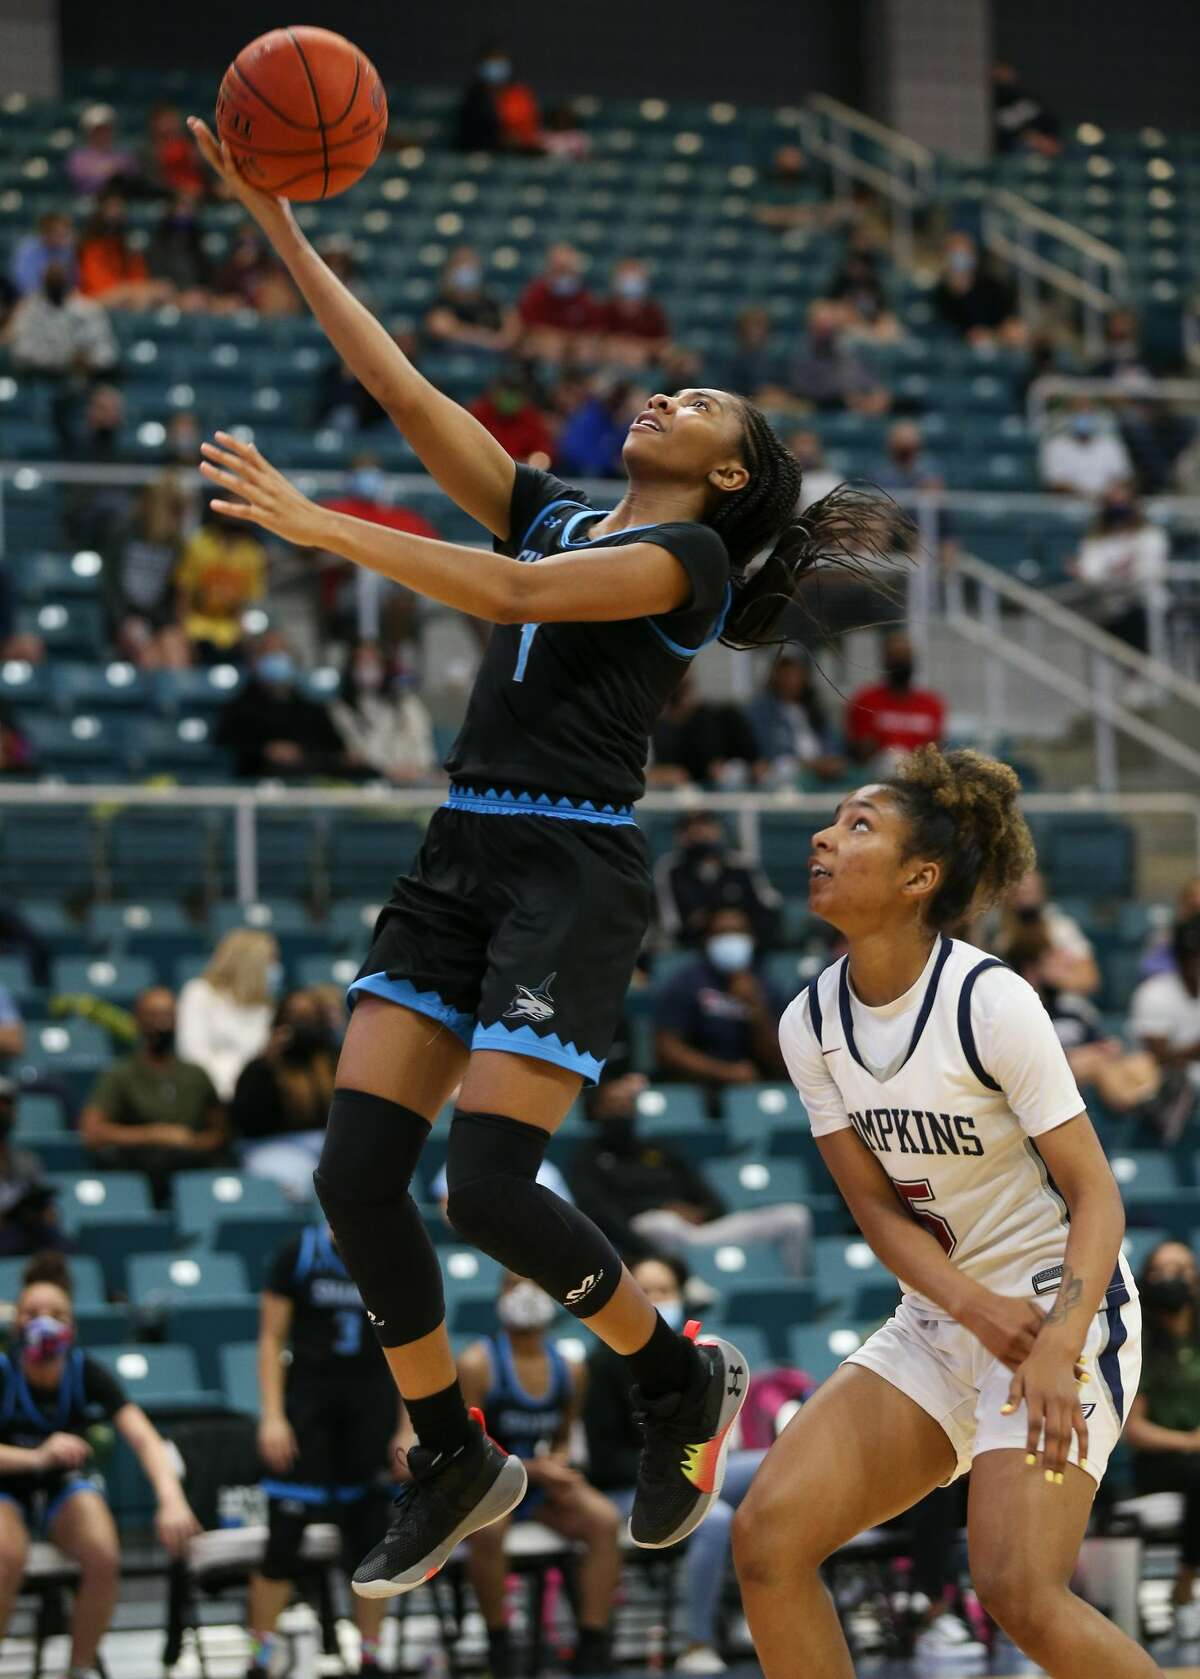 Shadow Creek Sharks guard Brooklin Brown (1) lays up the ball over Tompkins Crystal Smith (5) during the regional semi-finals at Merrell Center in Katy on Saturday, Feb. 27, 2021. Shadow Creek won the game.